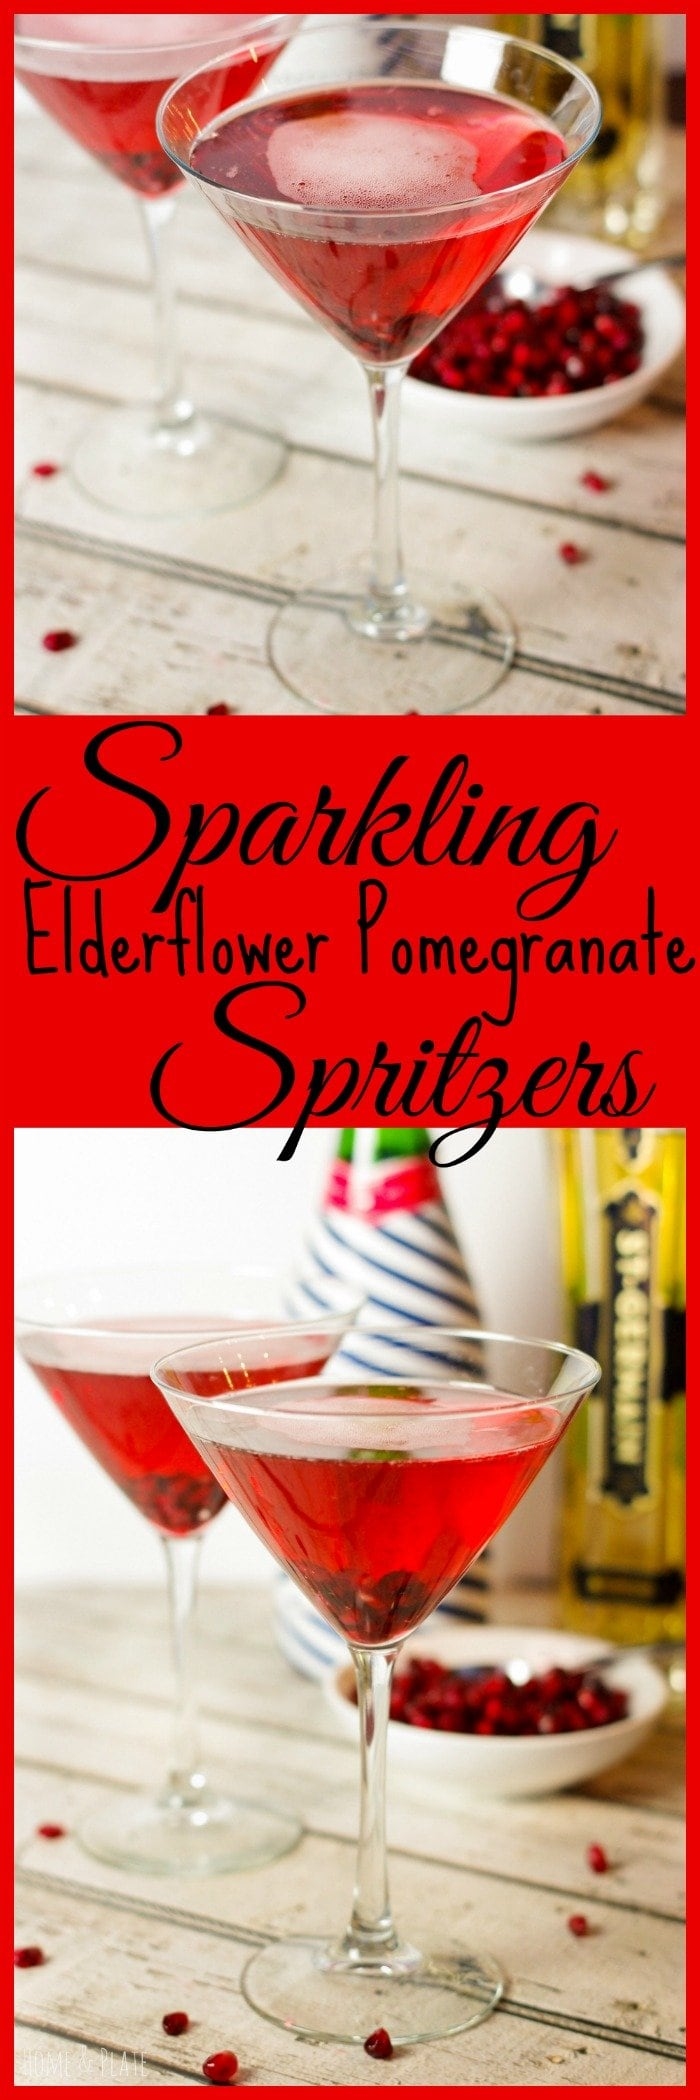 Sparkling Elderflower Pomegranate Spritzers | www.homeandplate.com | This cocktail is sweet and tart and is the perfect option for any festive gathering including Christmas Day and your New Year